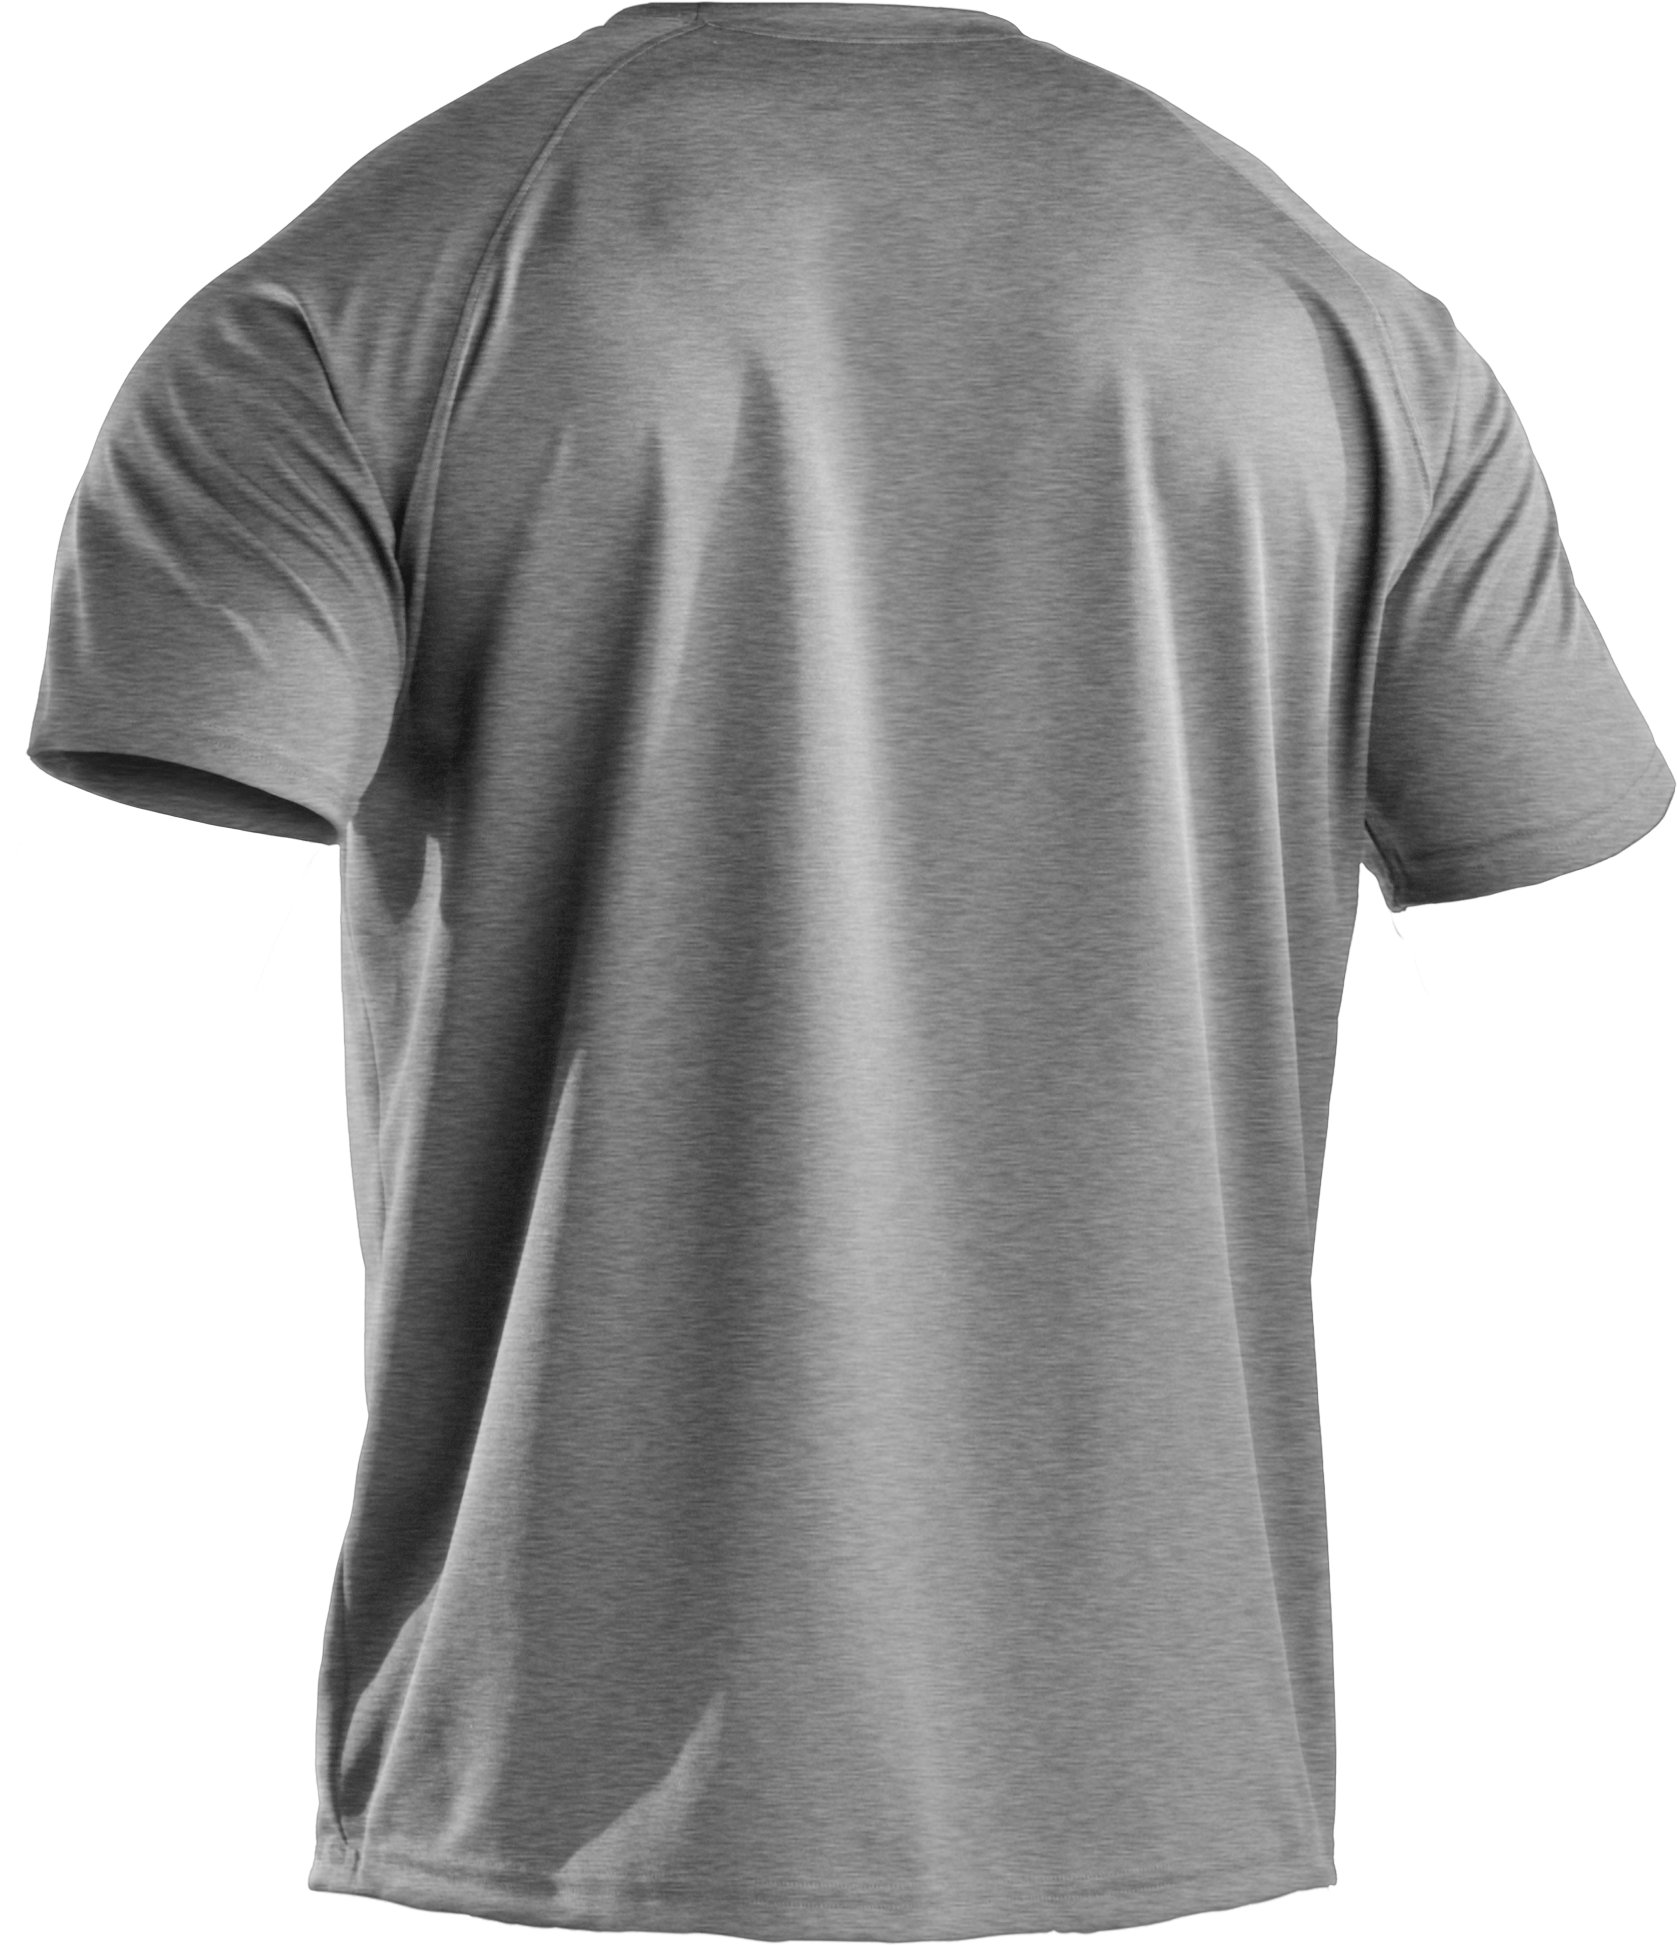 Men's HeatGear® Team Loose Short Sleeve T-Shirt, Medium Gray Heather, undefined